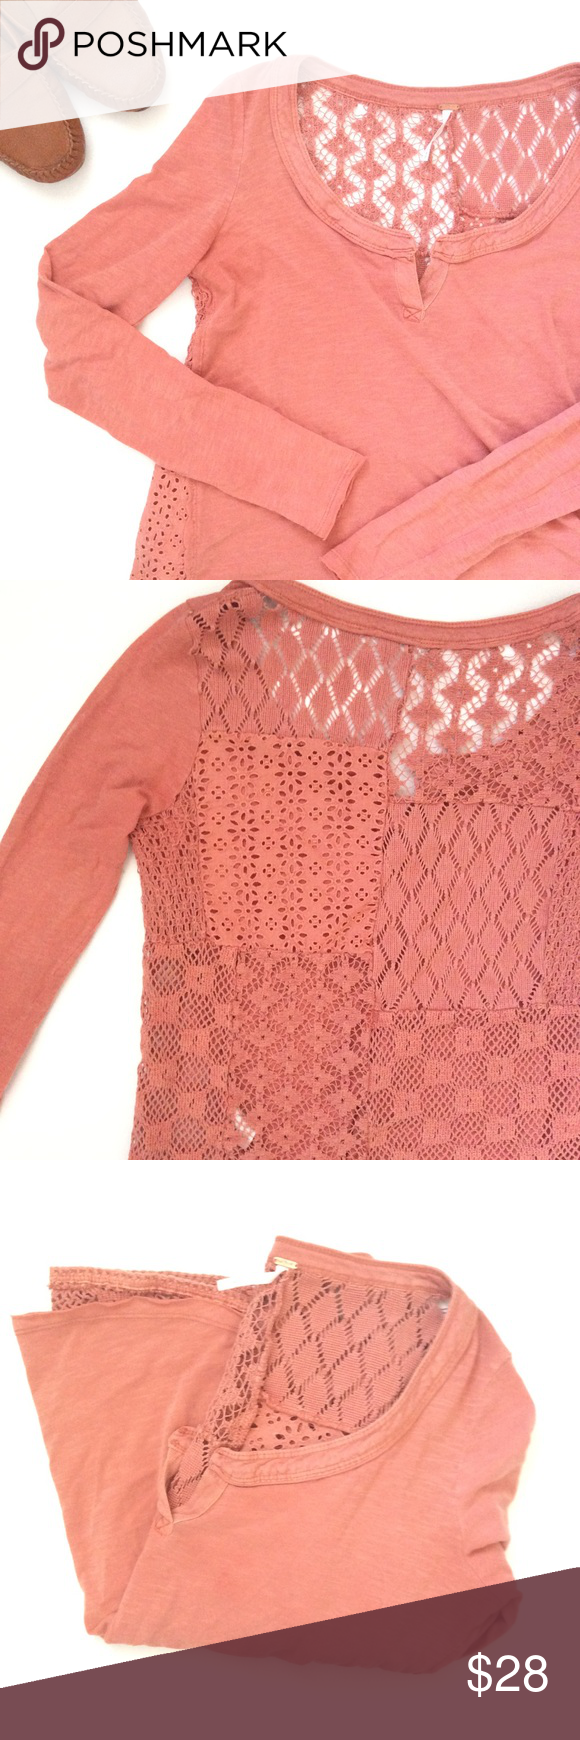 🆕{Listing} Free People Mixed Media Top Dusty rose long sleeved top by Free People. Beautiful lace patch work back. In really good condition. Pair with light wash flared jeans for a cool look. Free People Tops Tees - Long Sleeve